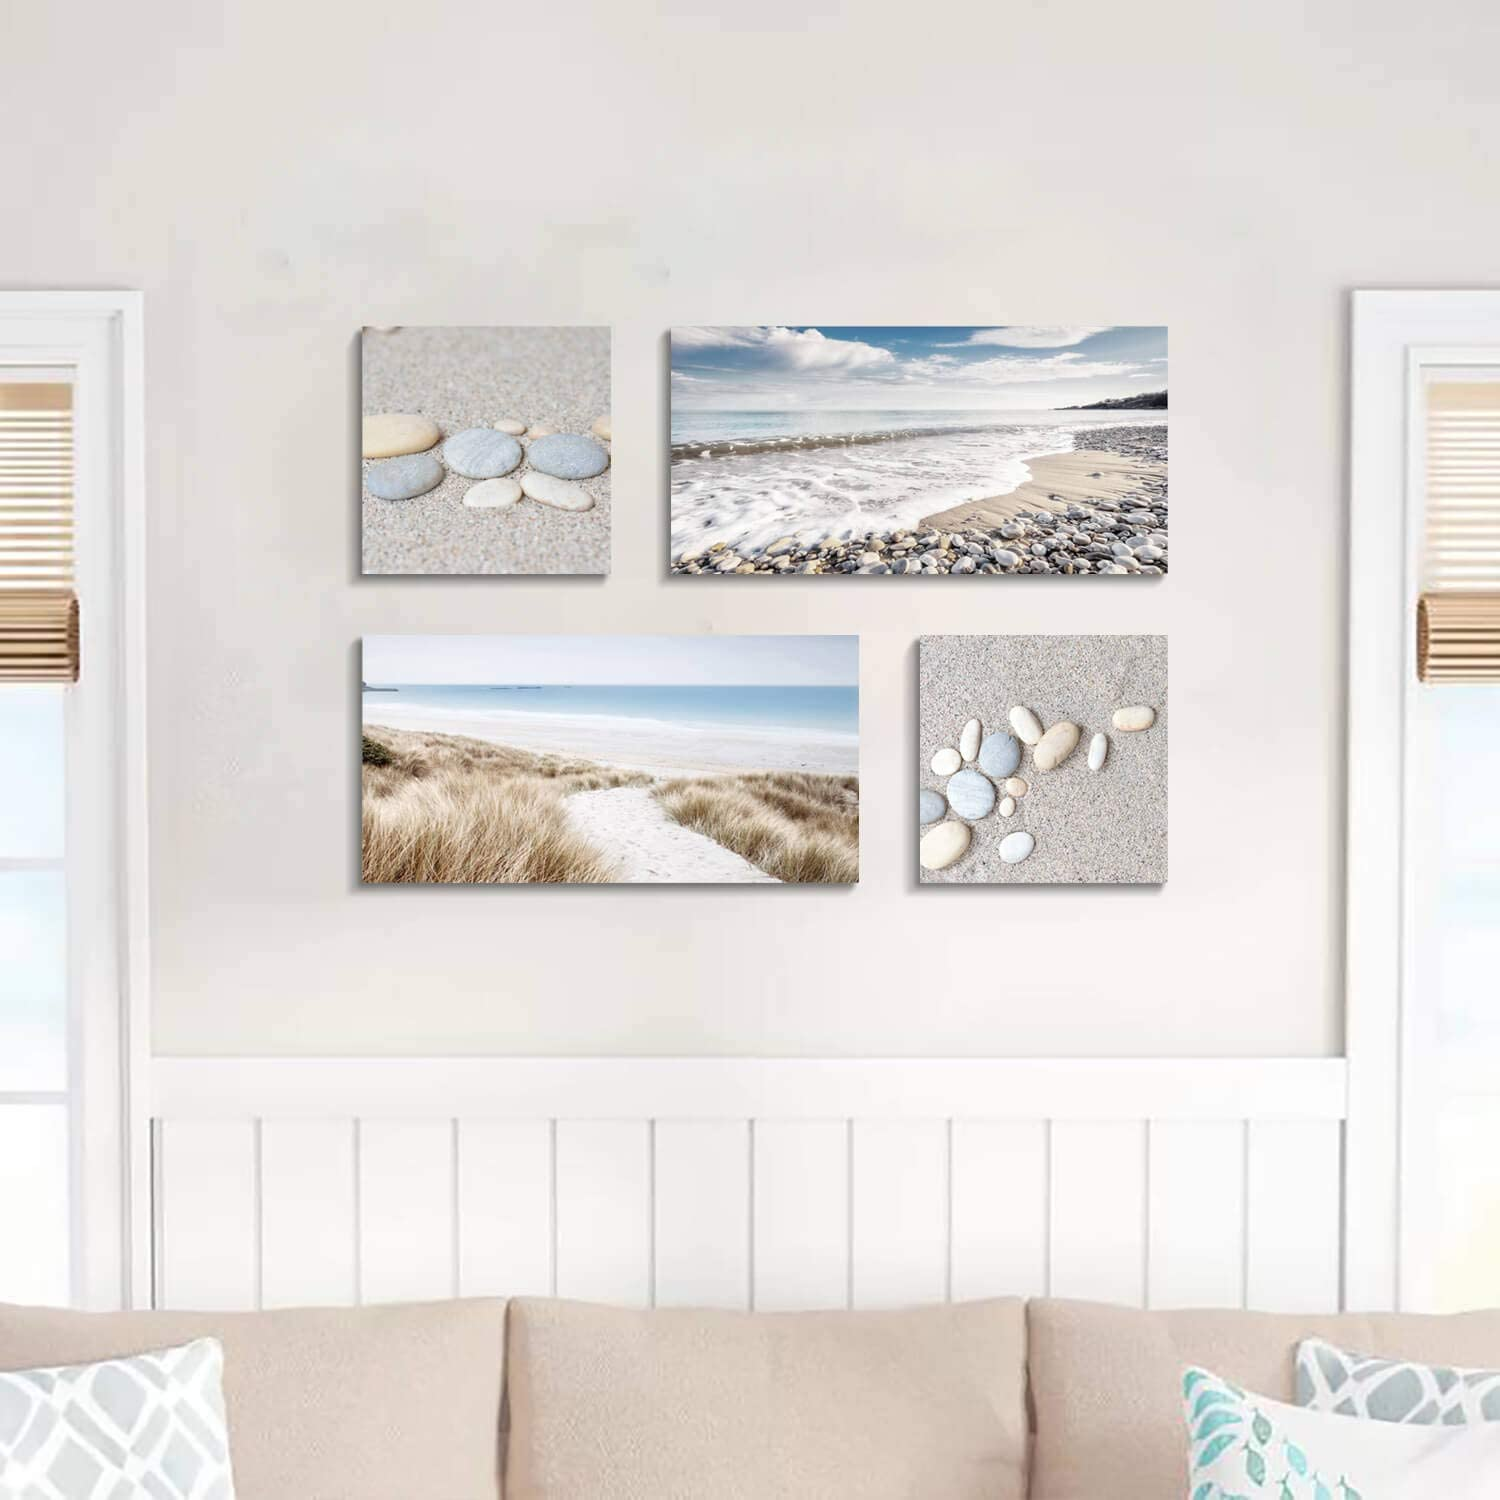 ALAGEO Canvas Print Wall Art Stone Sand Decor Oil Paintings Printed on Canvas Gallery Wrapped Canvas Art Off-White Pictures Paintings Framed Artwork for Home Decor 8x8 inches